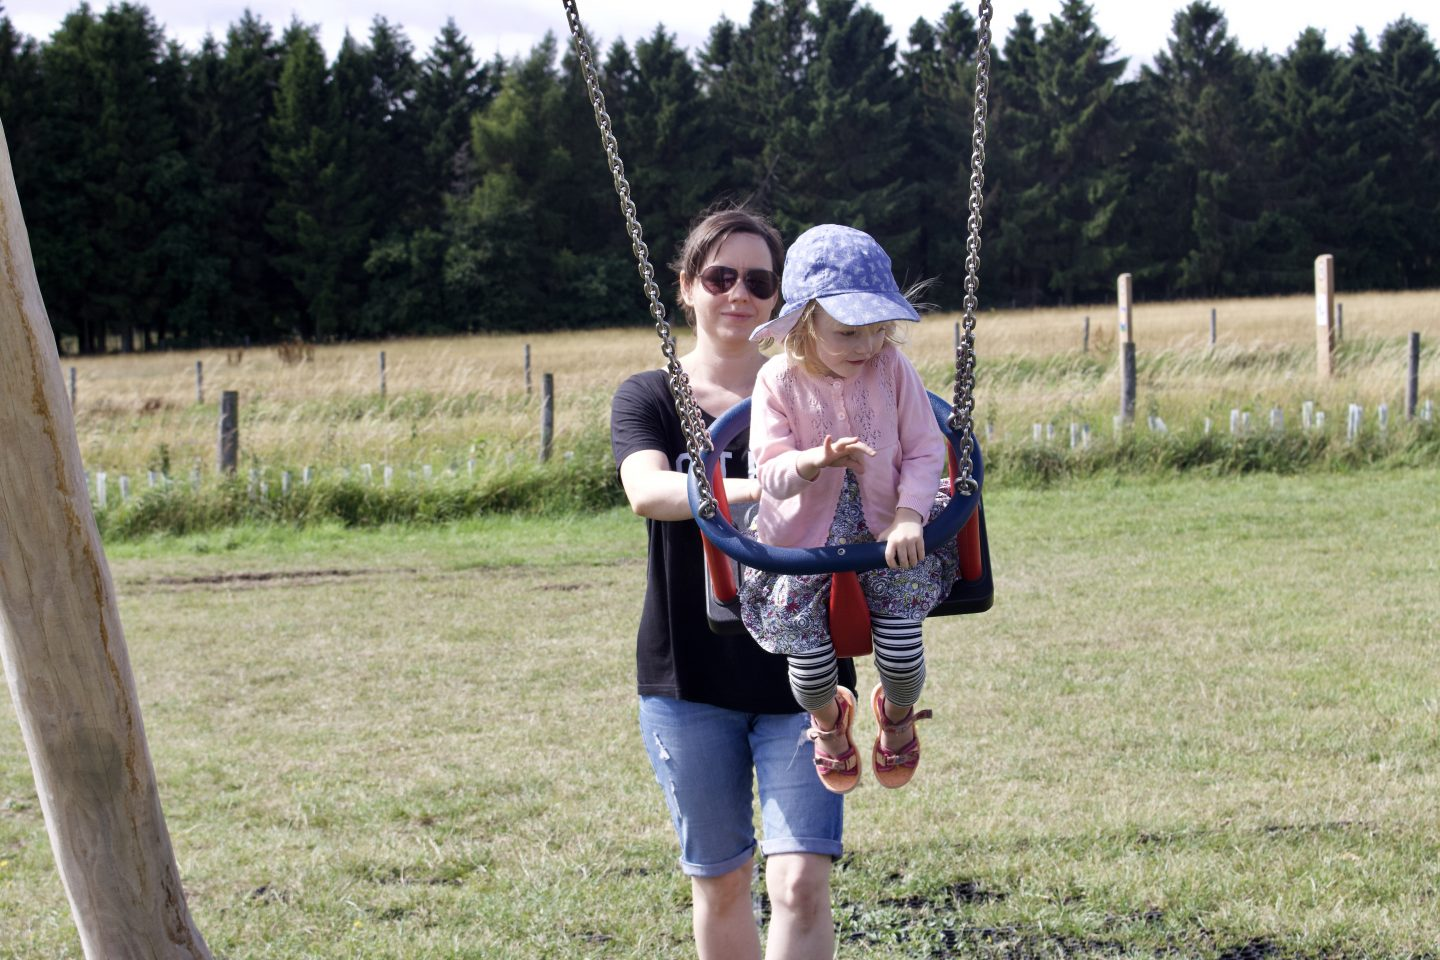 A brunette woman smiling pushing her daughter on a swing